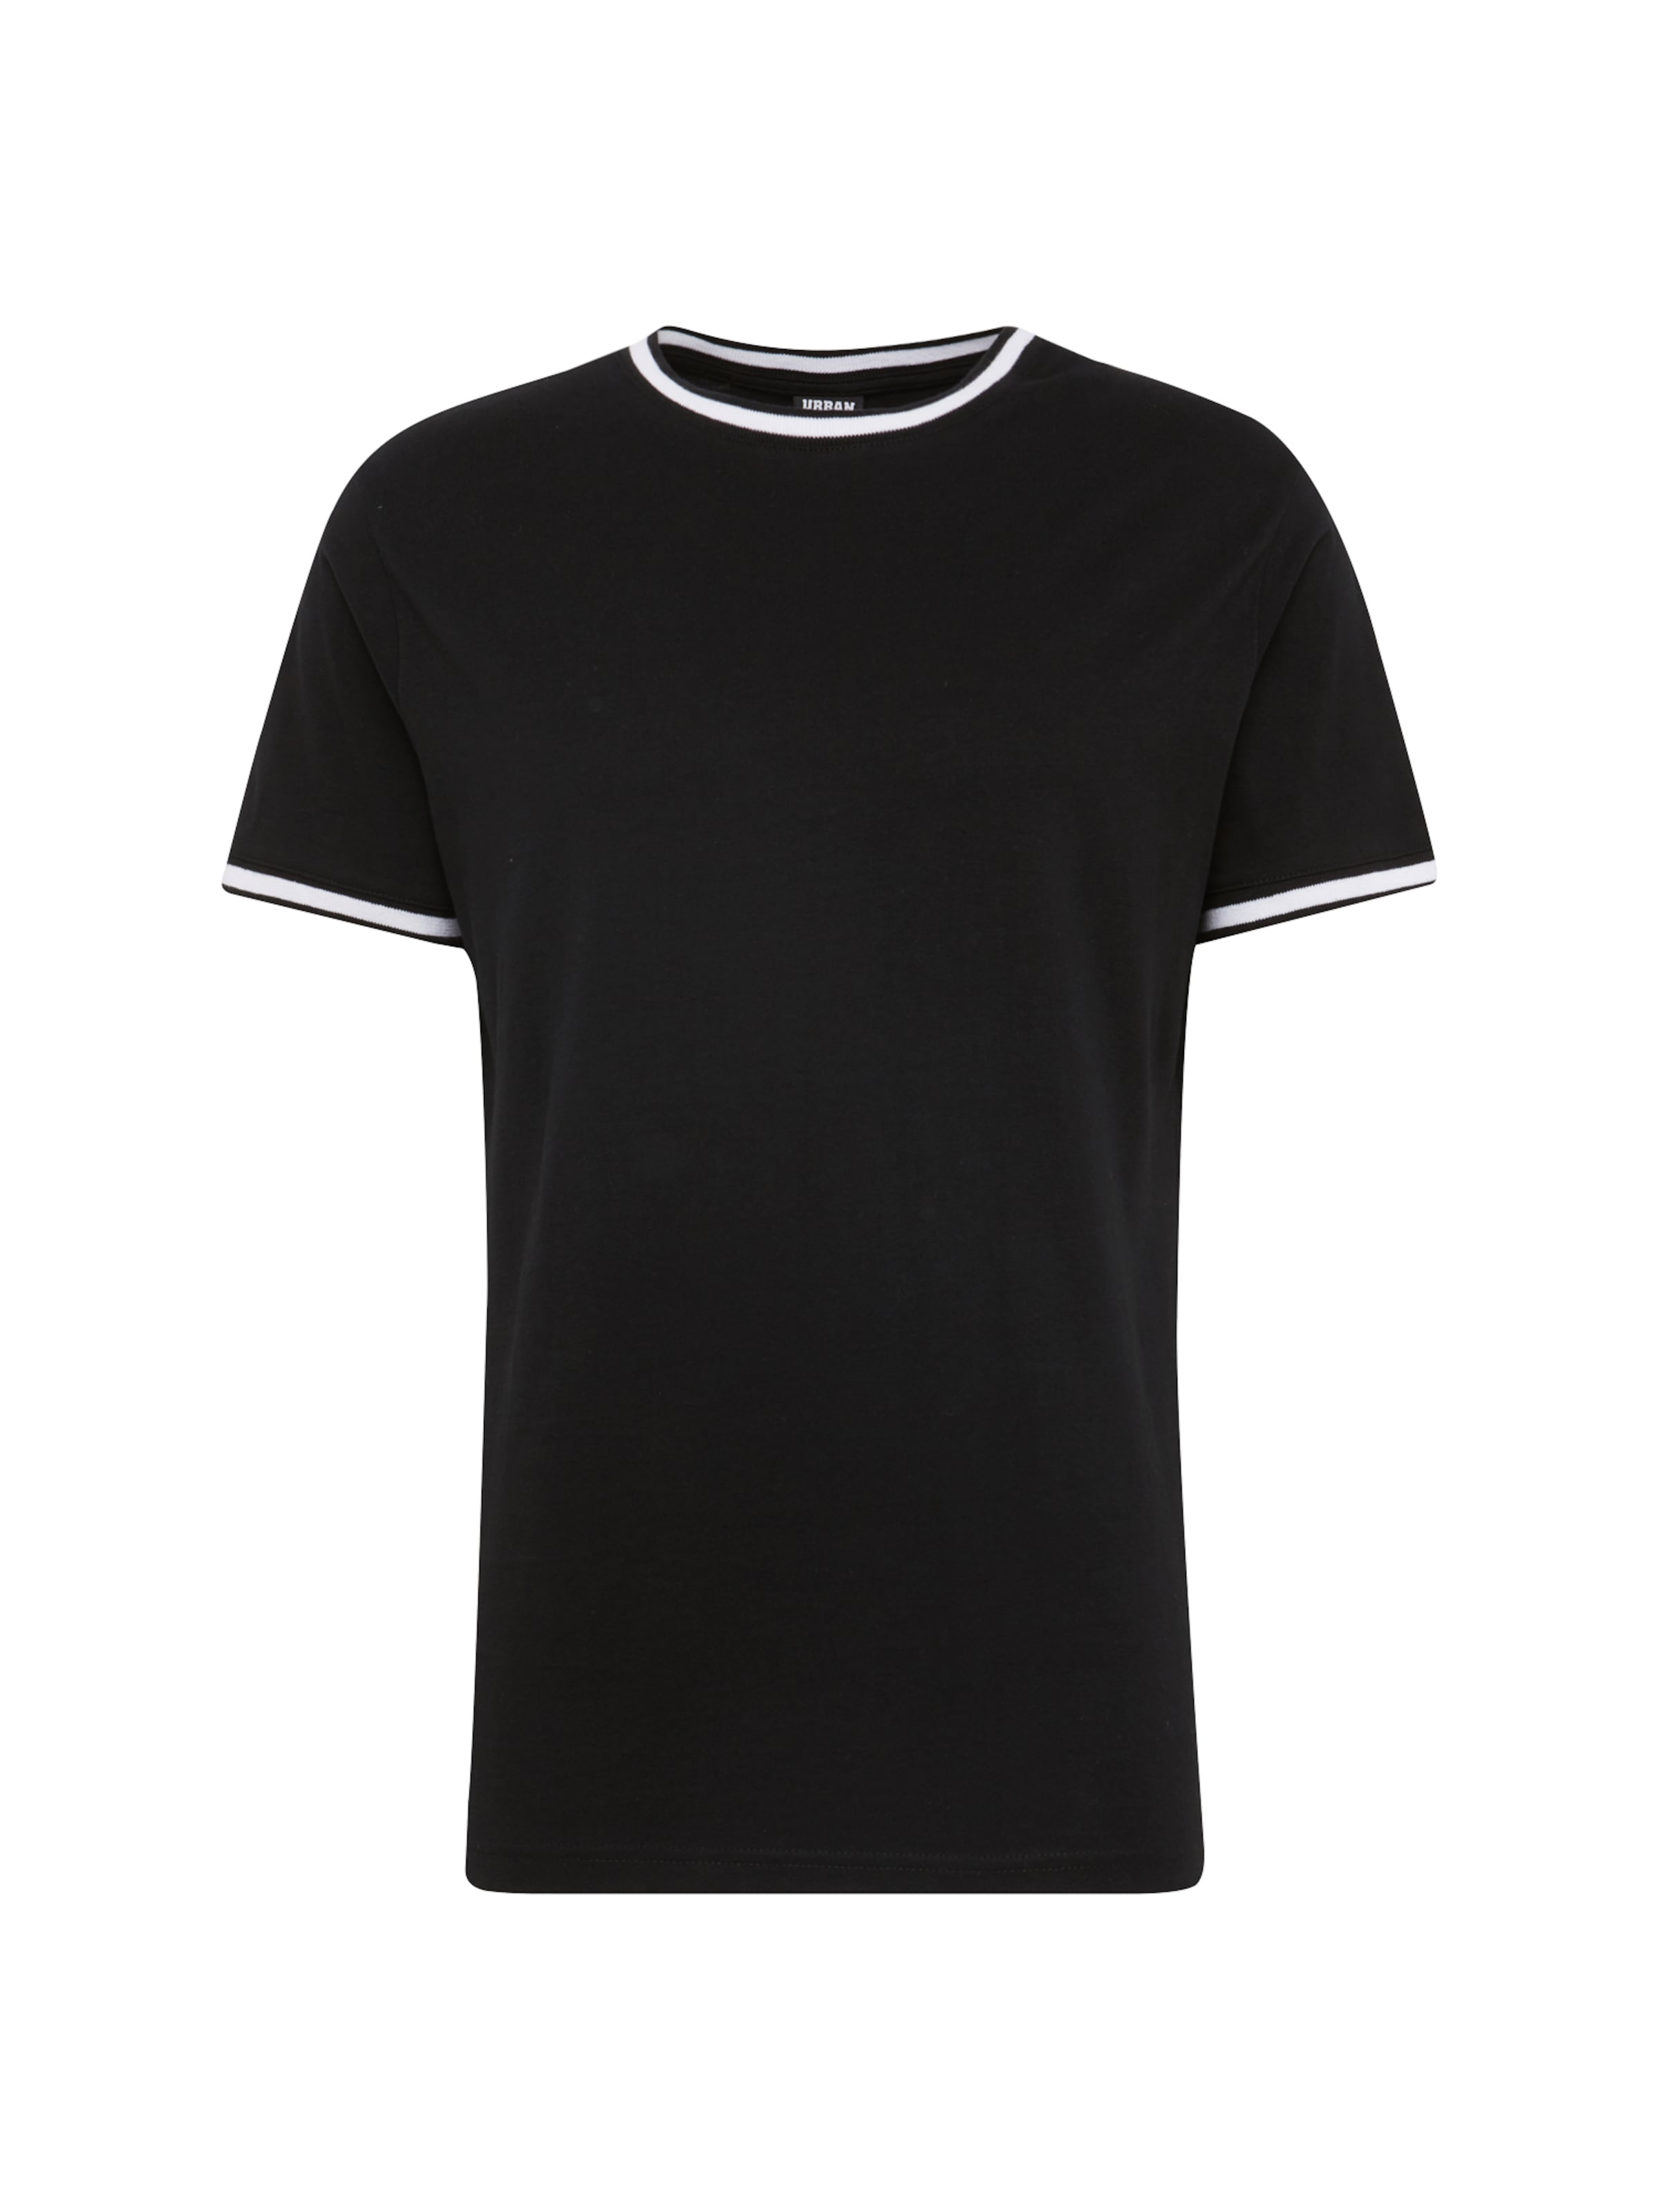 Pocket En Urban T 'collage Classics shirt Tee' NoirBlanc vmN8n0wO